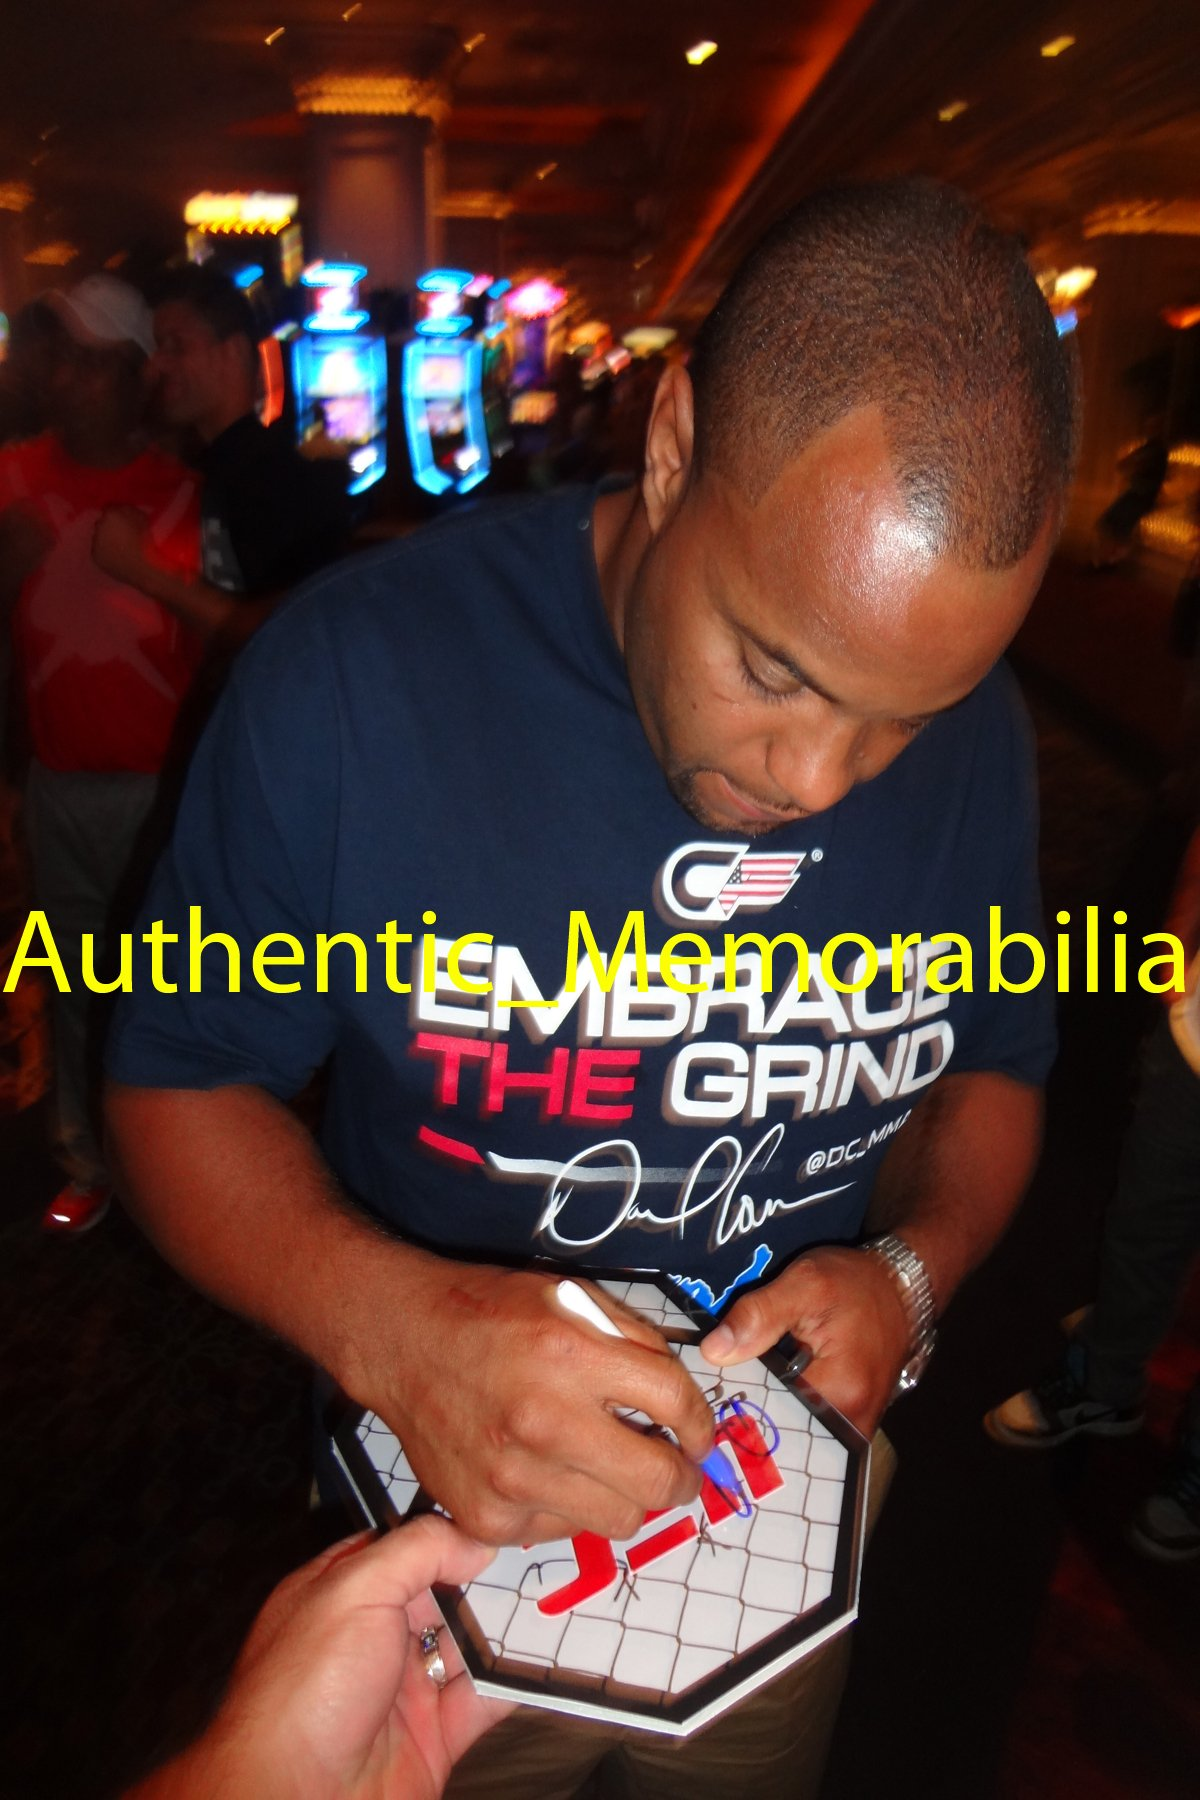 Daniel Cormier Autographed UFC 8x8 UFC Octagon W/PROOF, Picture of Daniel Signing For Us, UFC, Ultimate Fighting Championship, Strikeforce, Strikeforce Champion, Heavyweight Champion